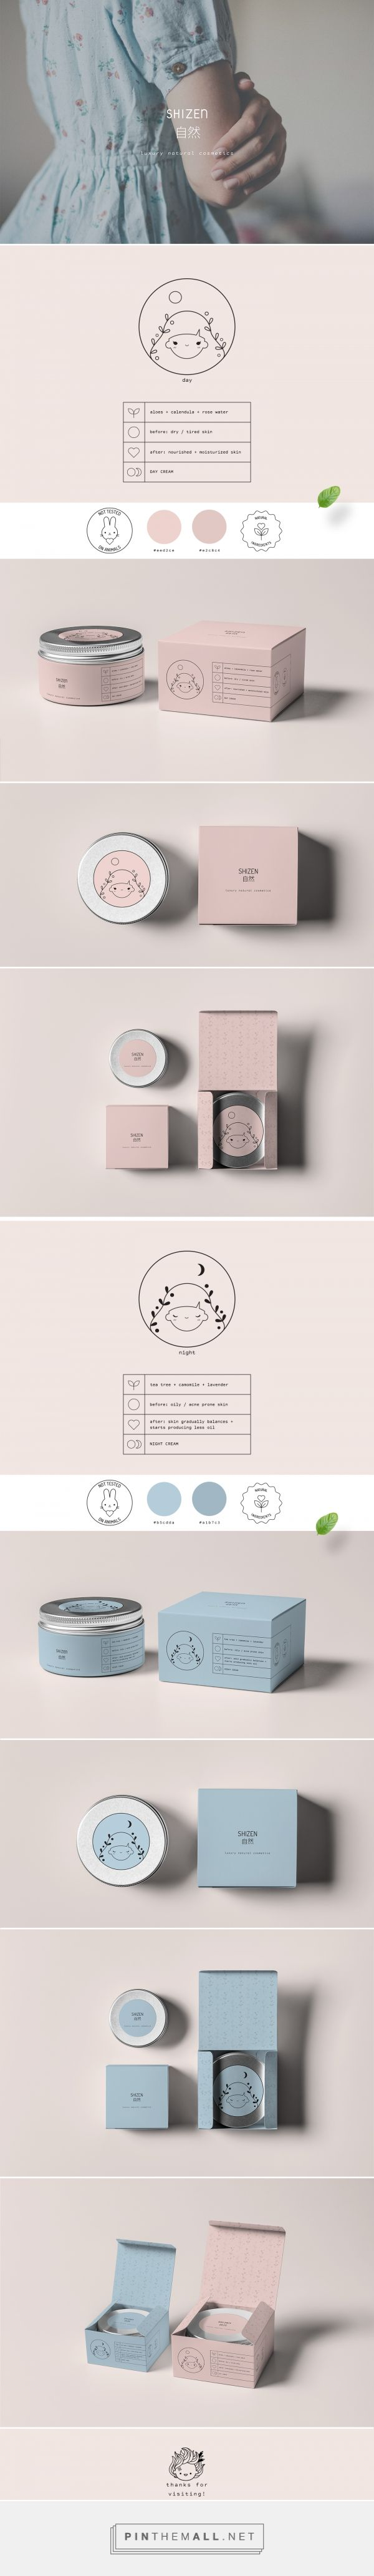 Shizen Luxury Cosmetic Packaging by Paulina Helena Undziakiewicz | Fivestar Branding Agency – Design and Branding Agency & Curated Inspiration Gallery